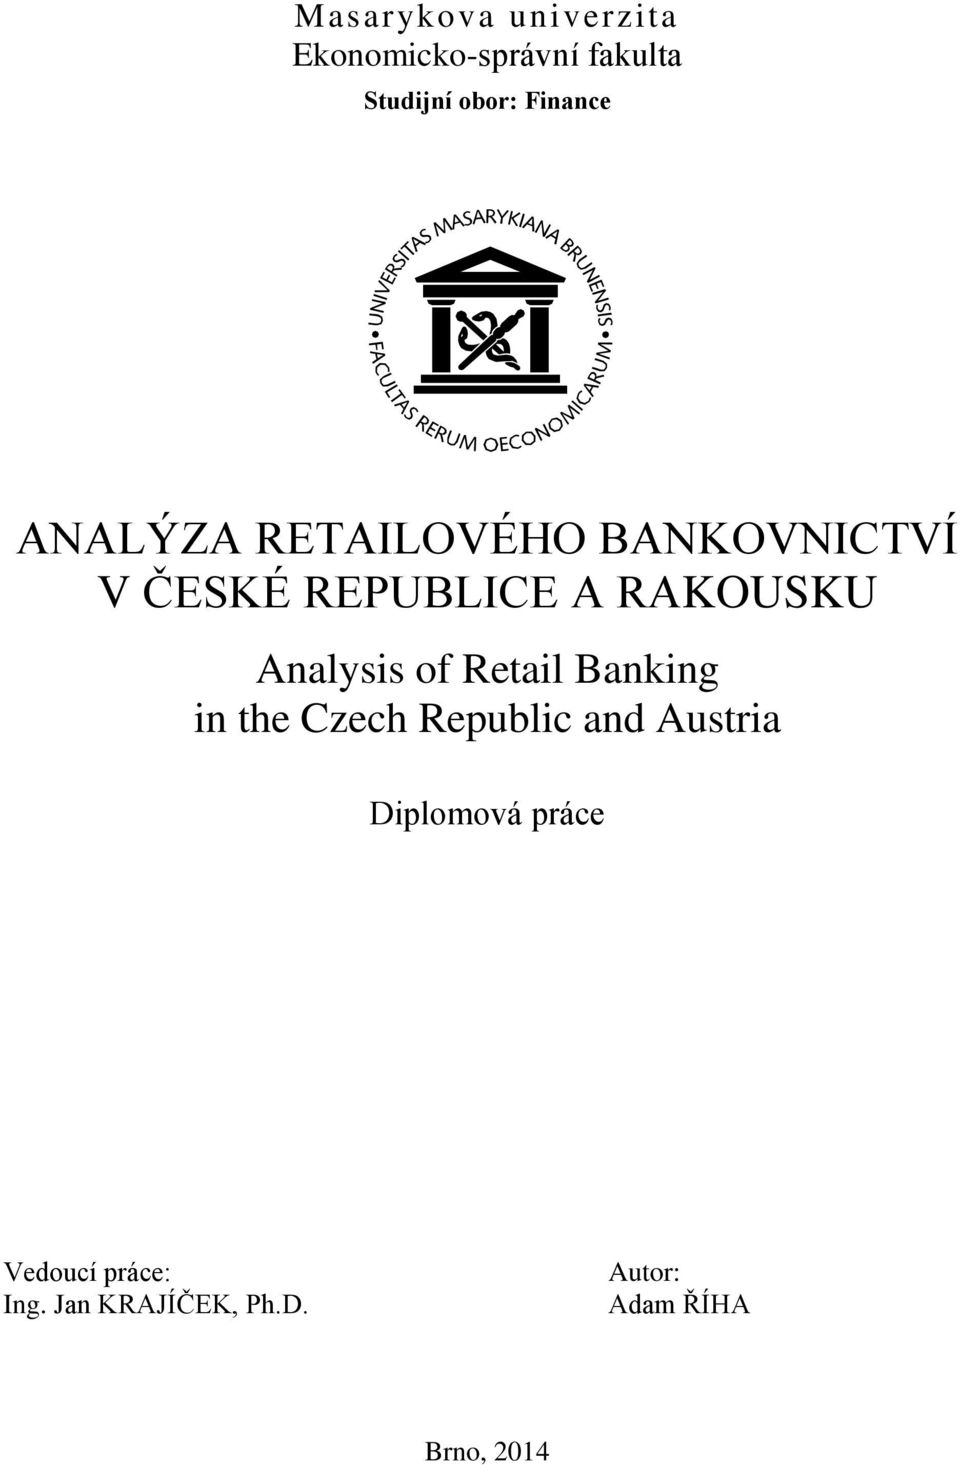 Analysis of Retail Banking in the Czech Republic and Austria